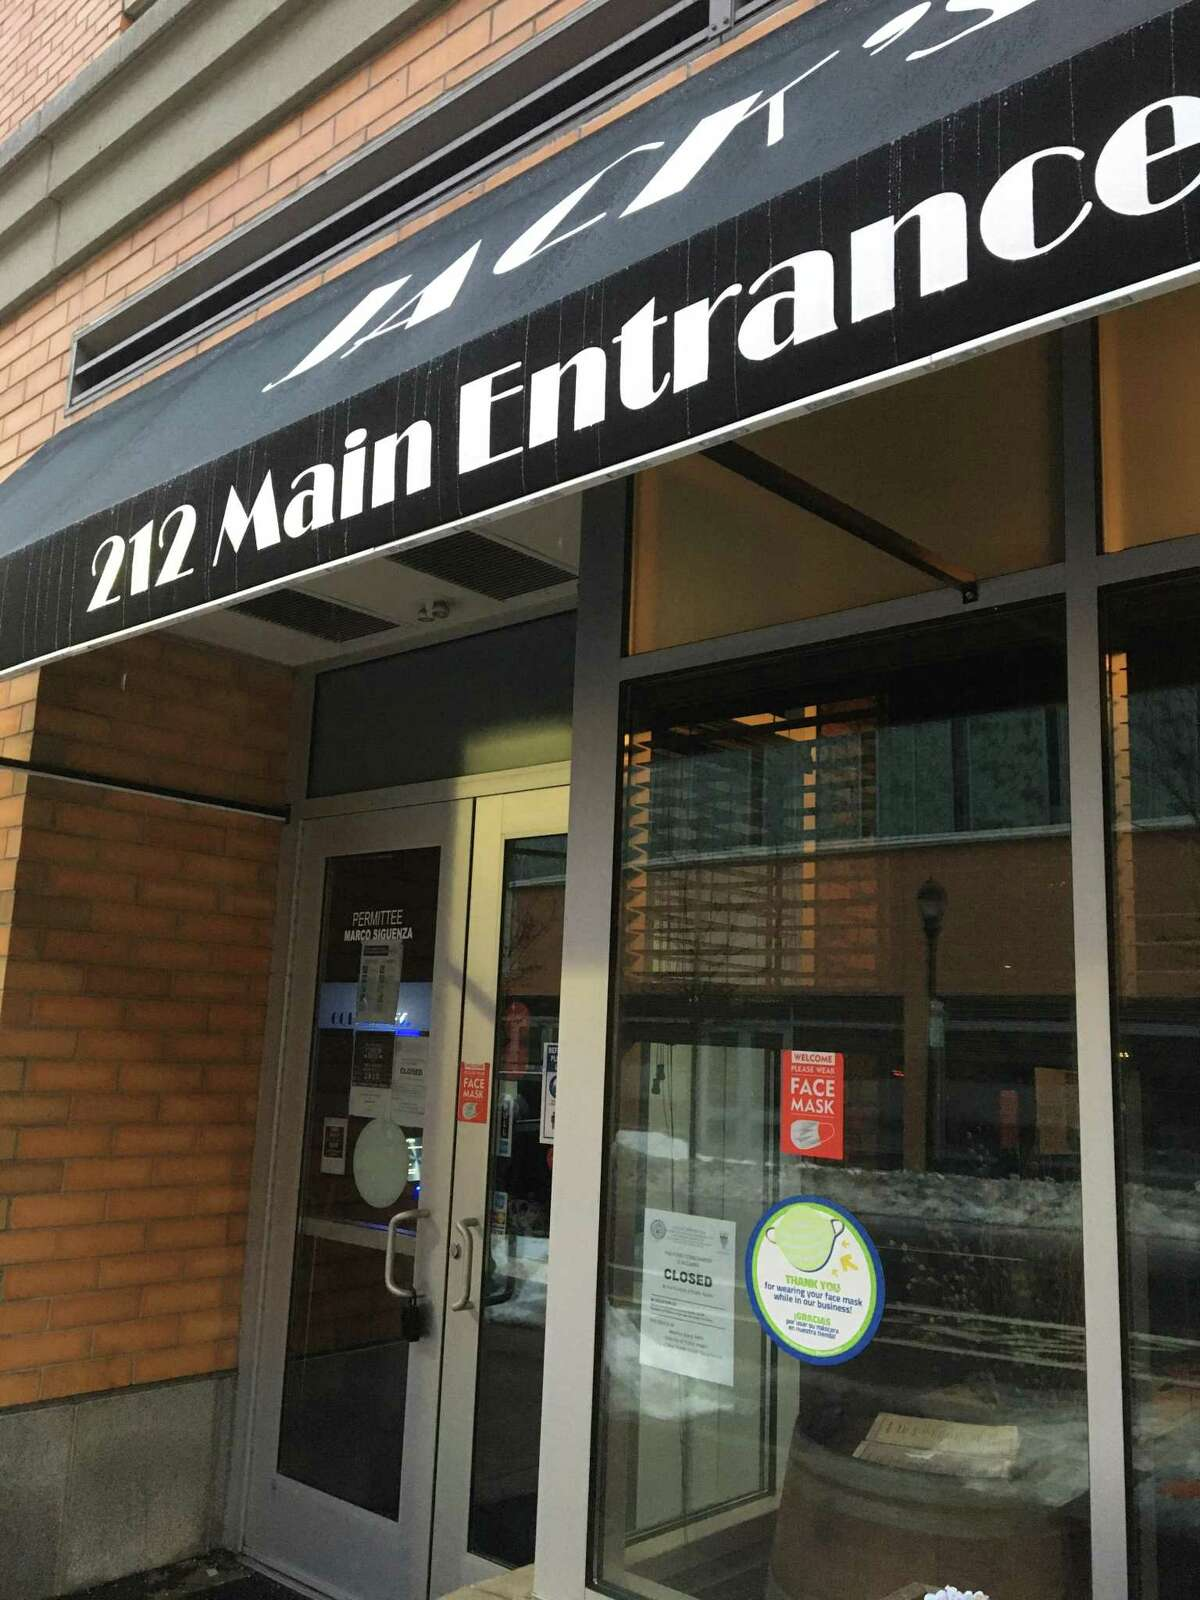 New Haven Health Department closure notices have been posted on the doors of Jack's Steakhouse, site of three suspected drug overdoses on Feb. 15, two of which were fatal. The restaurant was ordered closed until it submits and the city approves a corrective action plan, and official said.